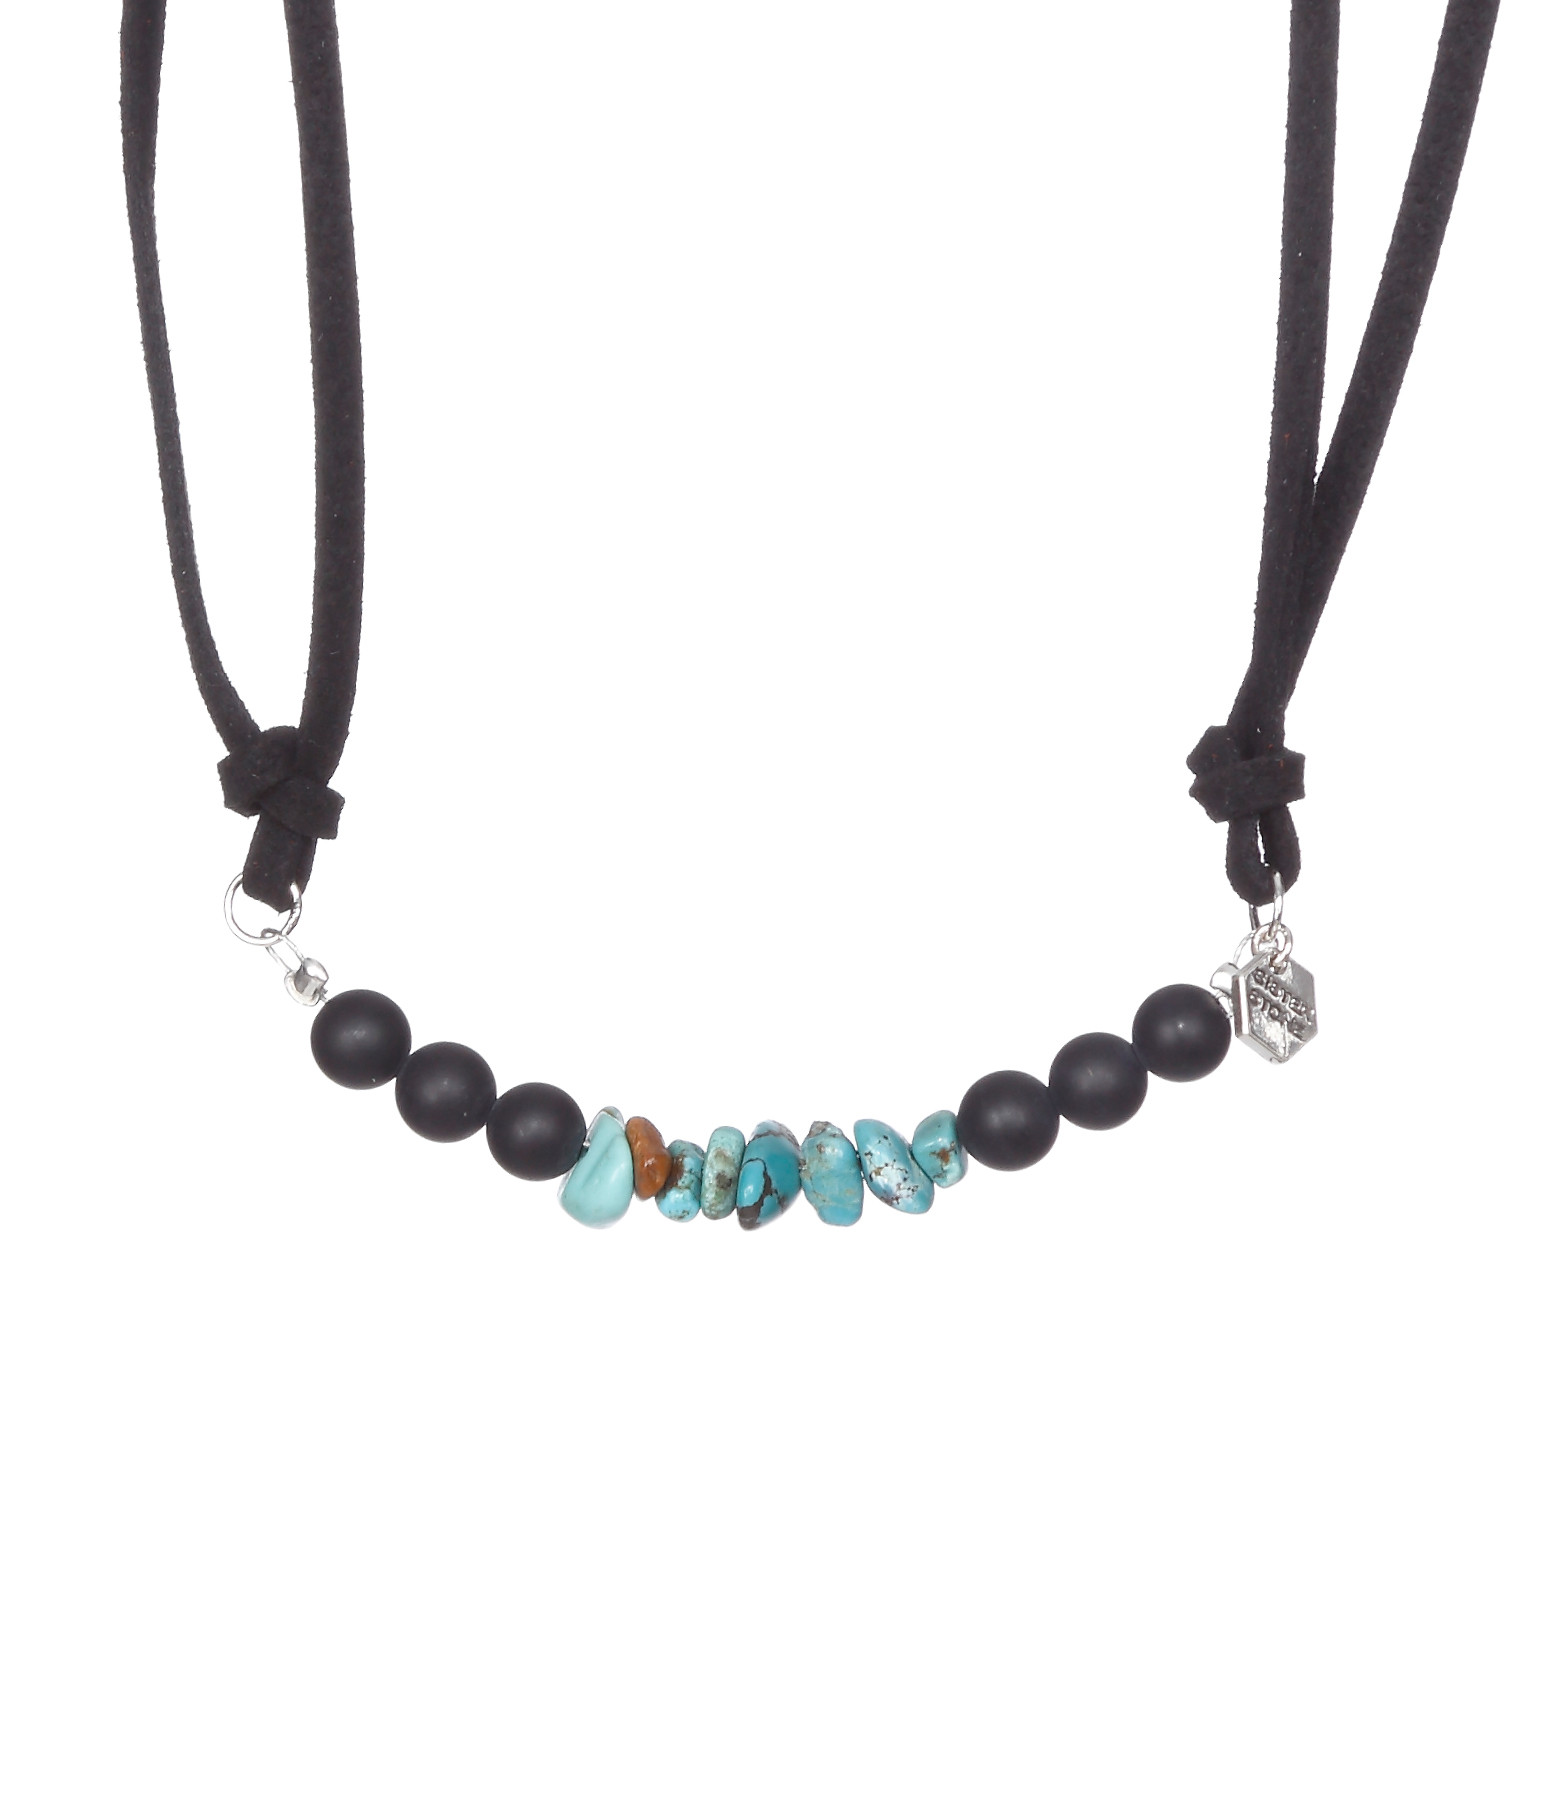 Bracelet Cuir The Pass Noir Onyx Nugget Turquoise - SISTERSTONE